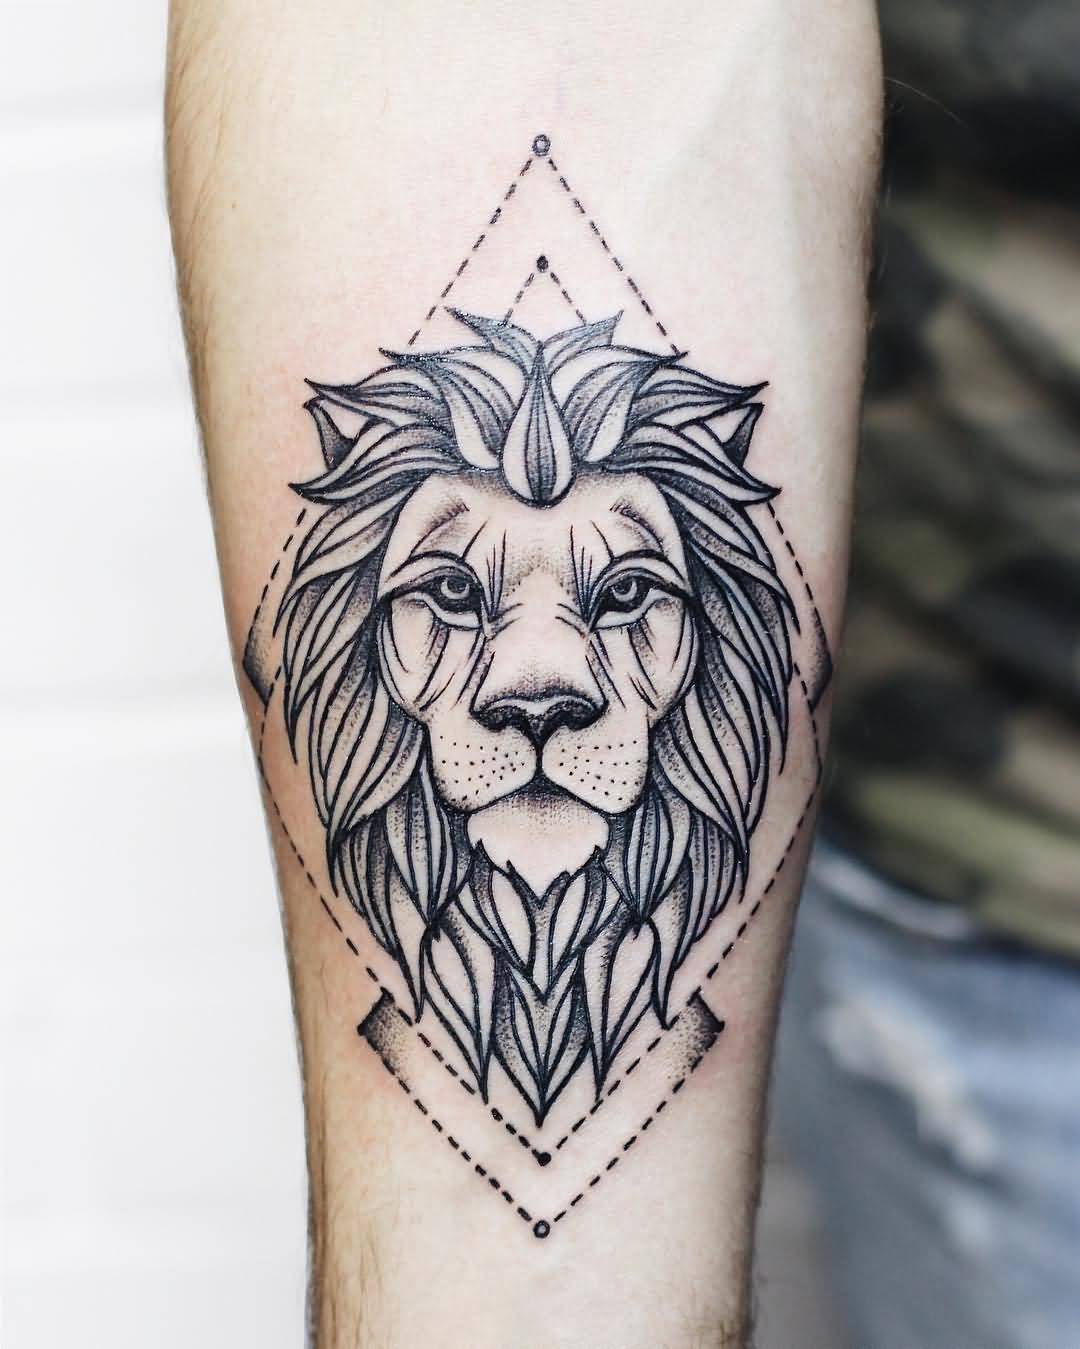 Geometric Lion Tattoo On Leg Calf Trendy Tattoos Tattoos For Guys Tattoos